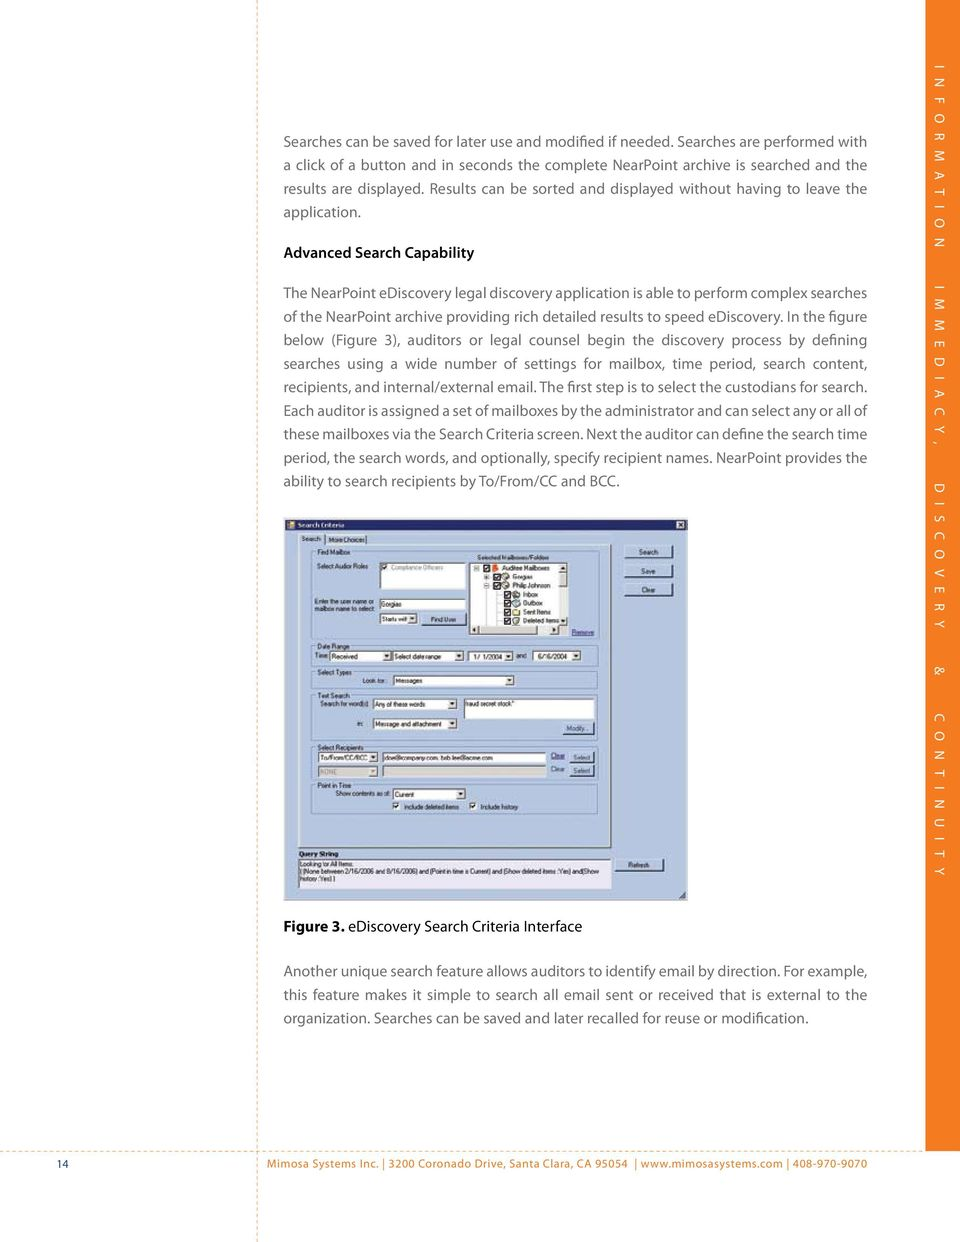 Advanced Search Capability The NearPoint ediscovery legal discovery application is able to perform complex searches of the NearPoint archive providing rich detailed results to speed ediscovery.